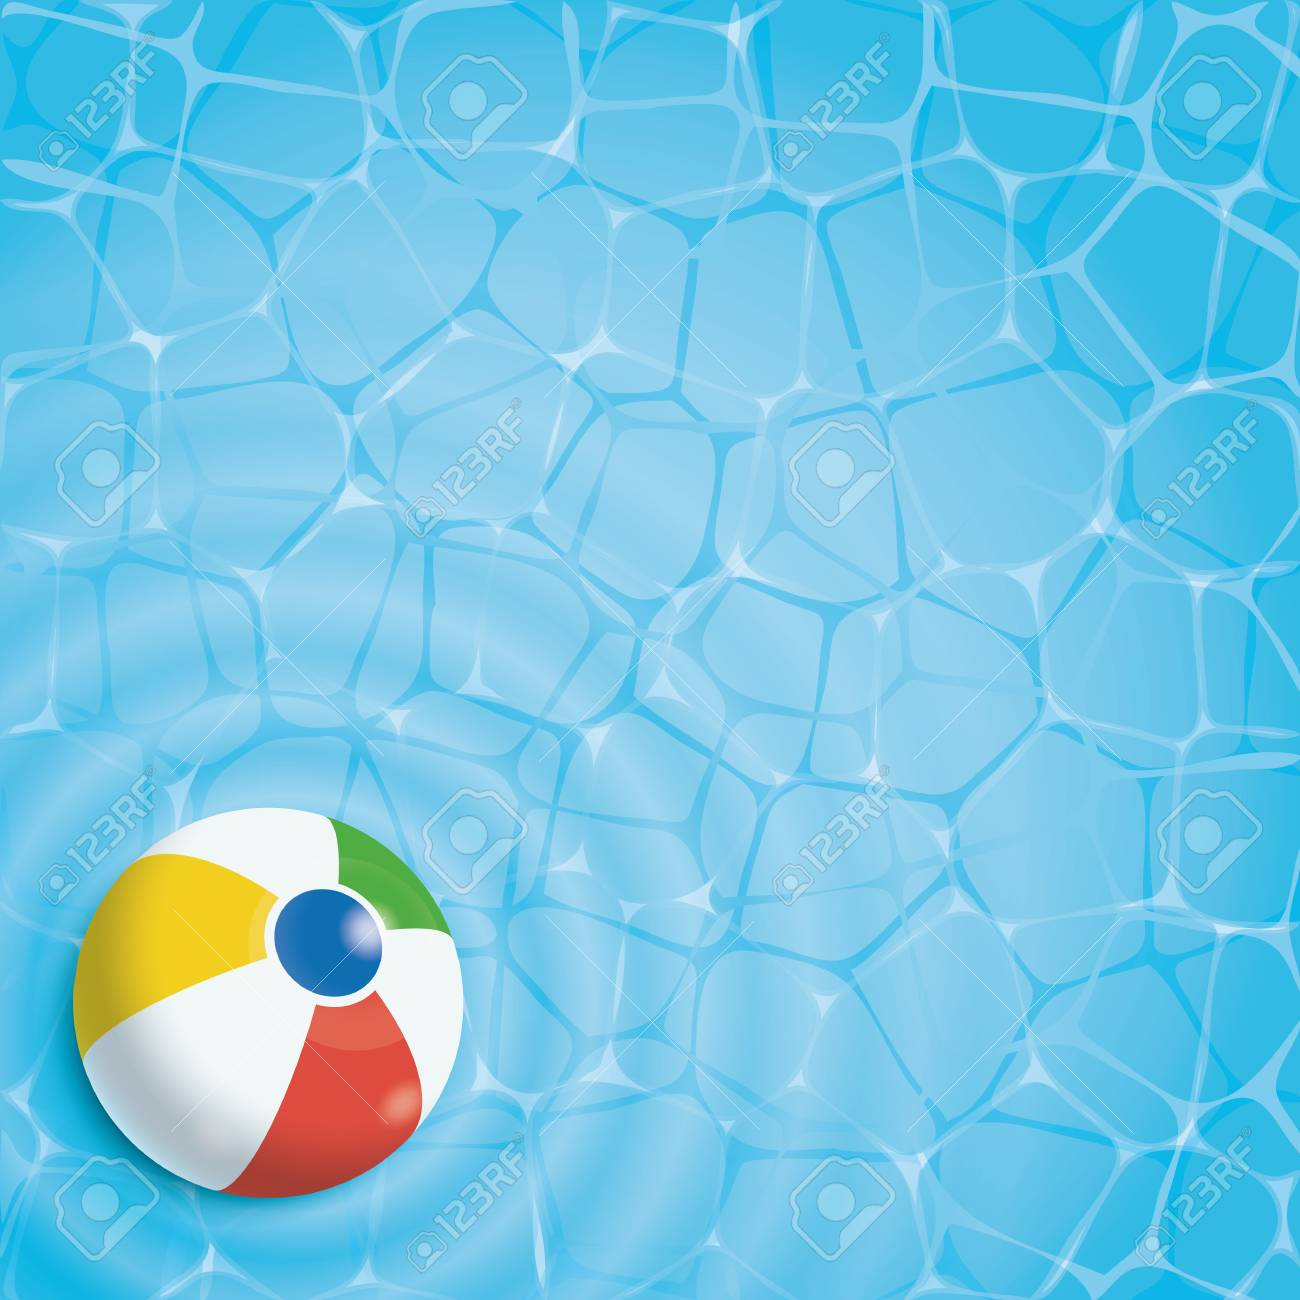 Beach Ball In Pool Intended Beach Ball In Swimming Pool Top View Stock Vector 80786720 Summer Background Ball In Swimming Pool Top View Royalty